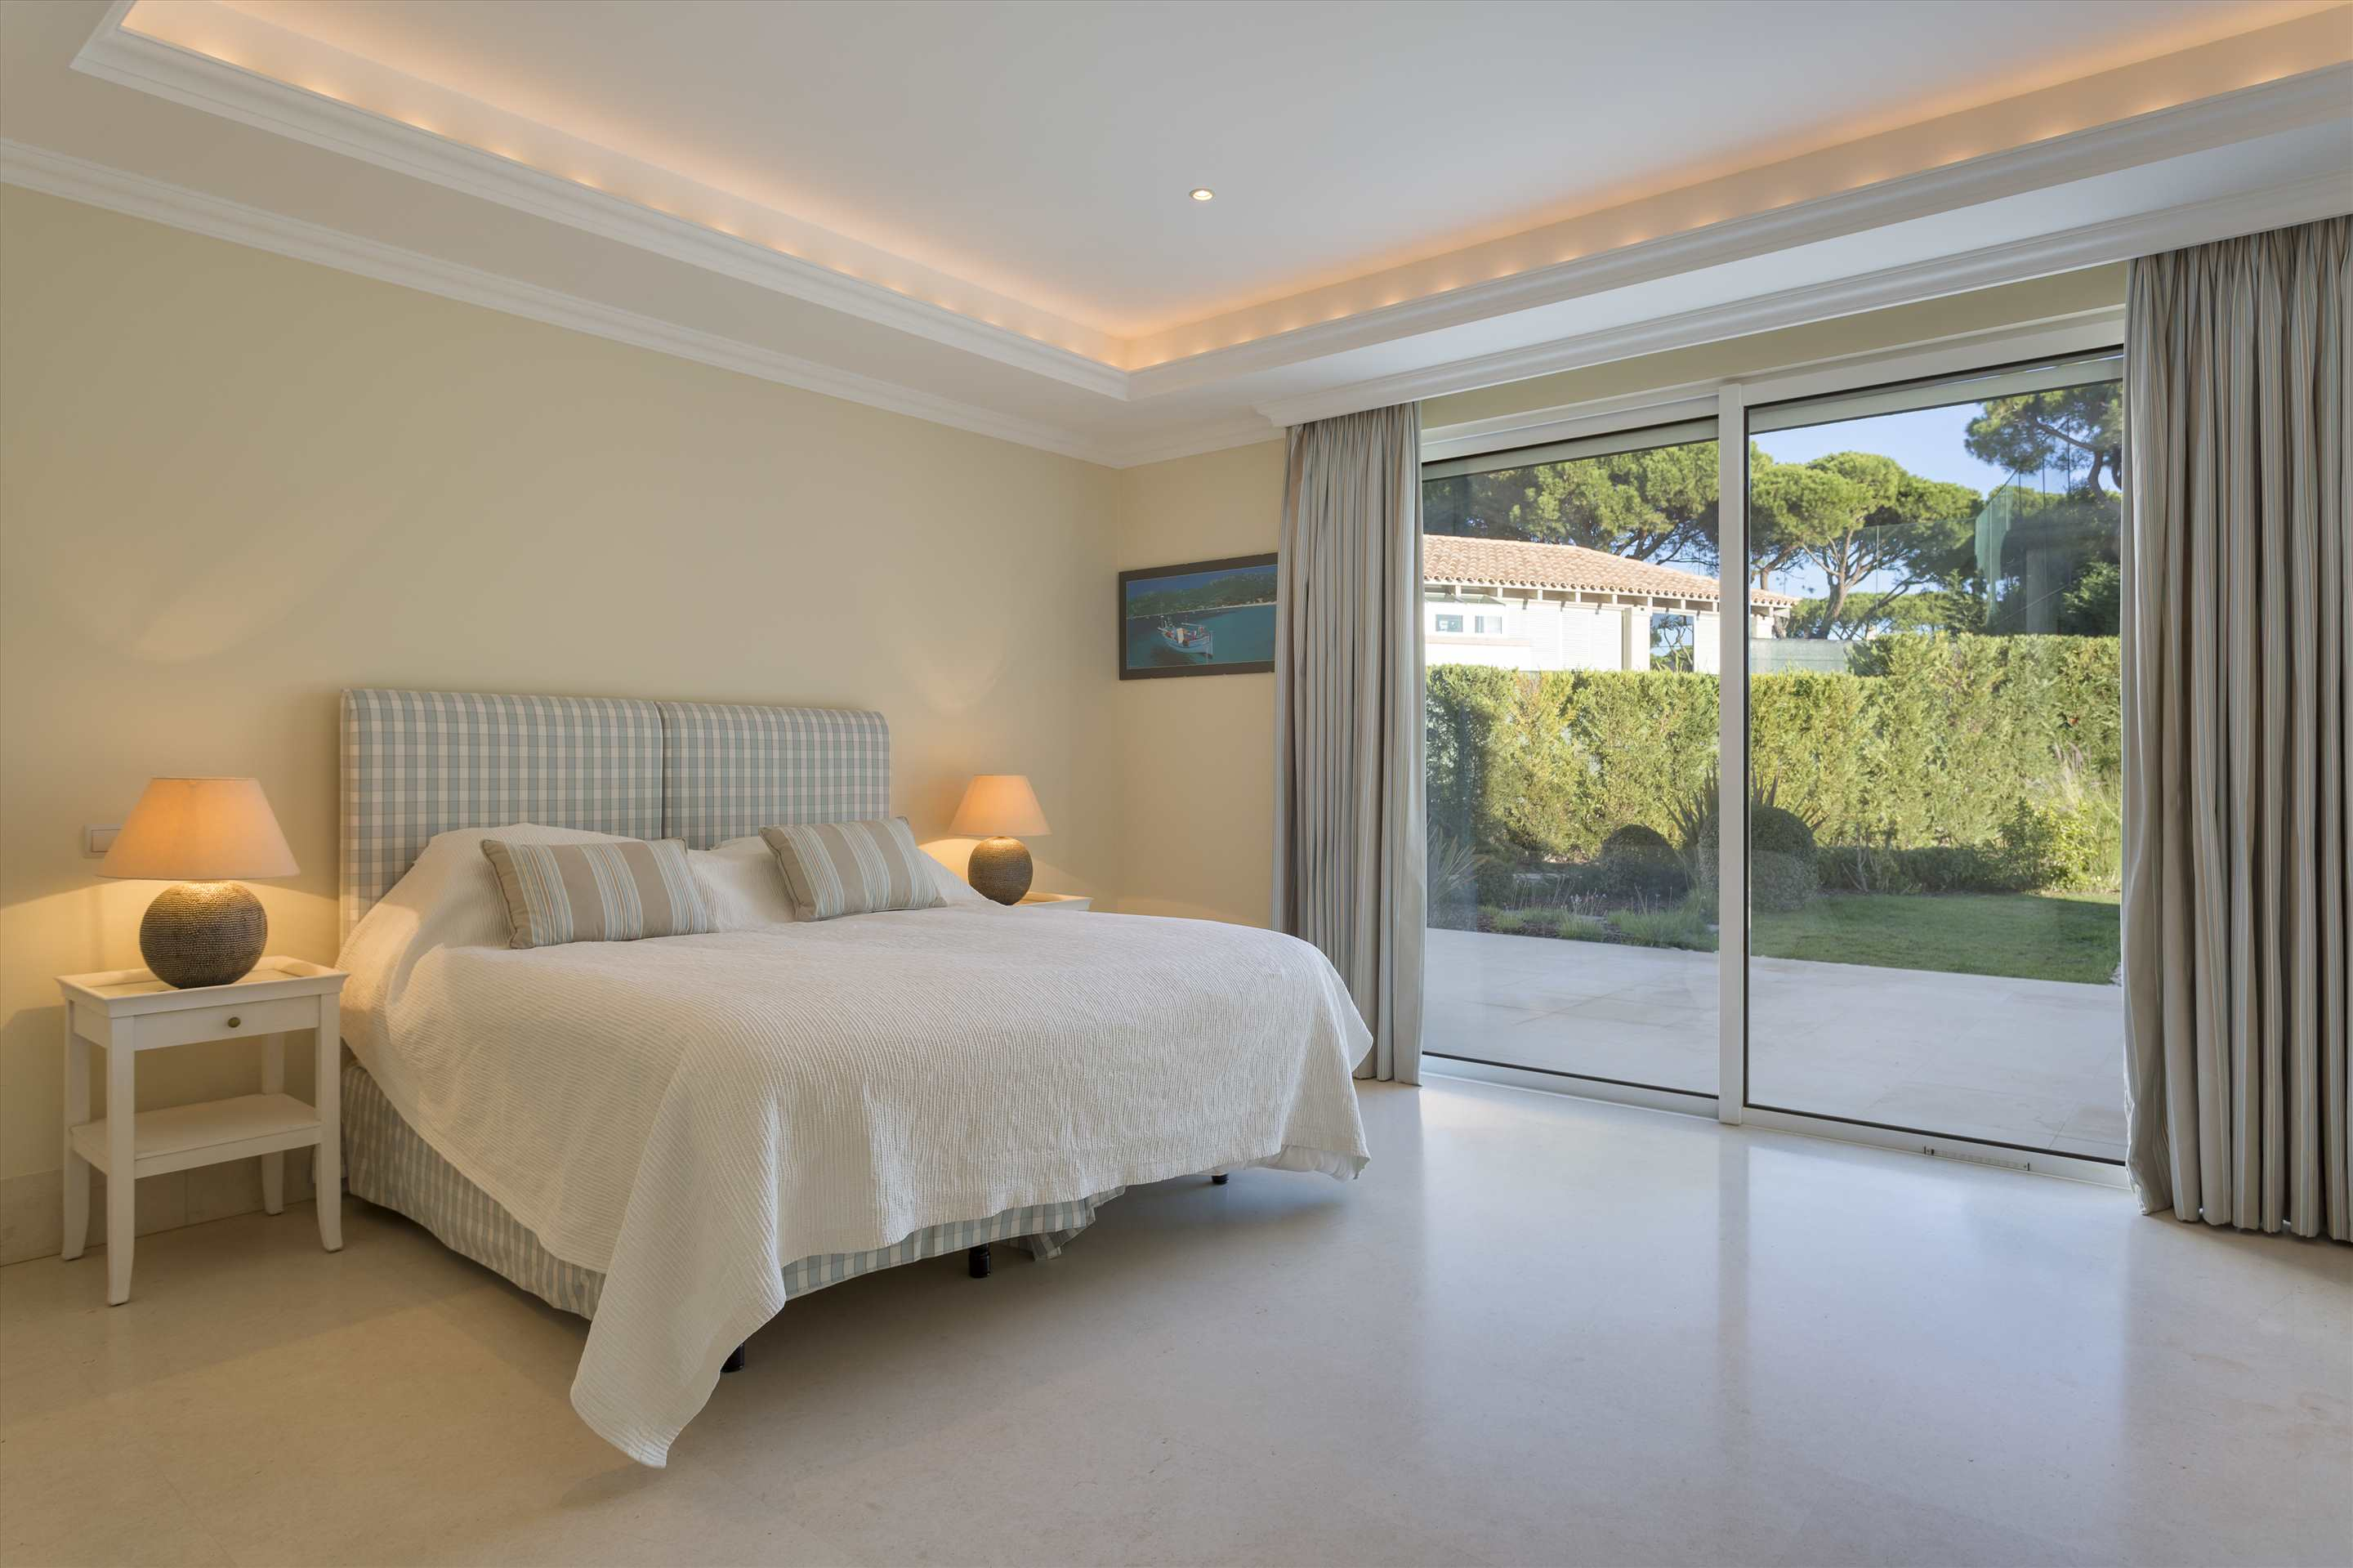 Villa Belissima, 5 bedroom villa in Vale do Lobo, Algarve Photo #31